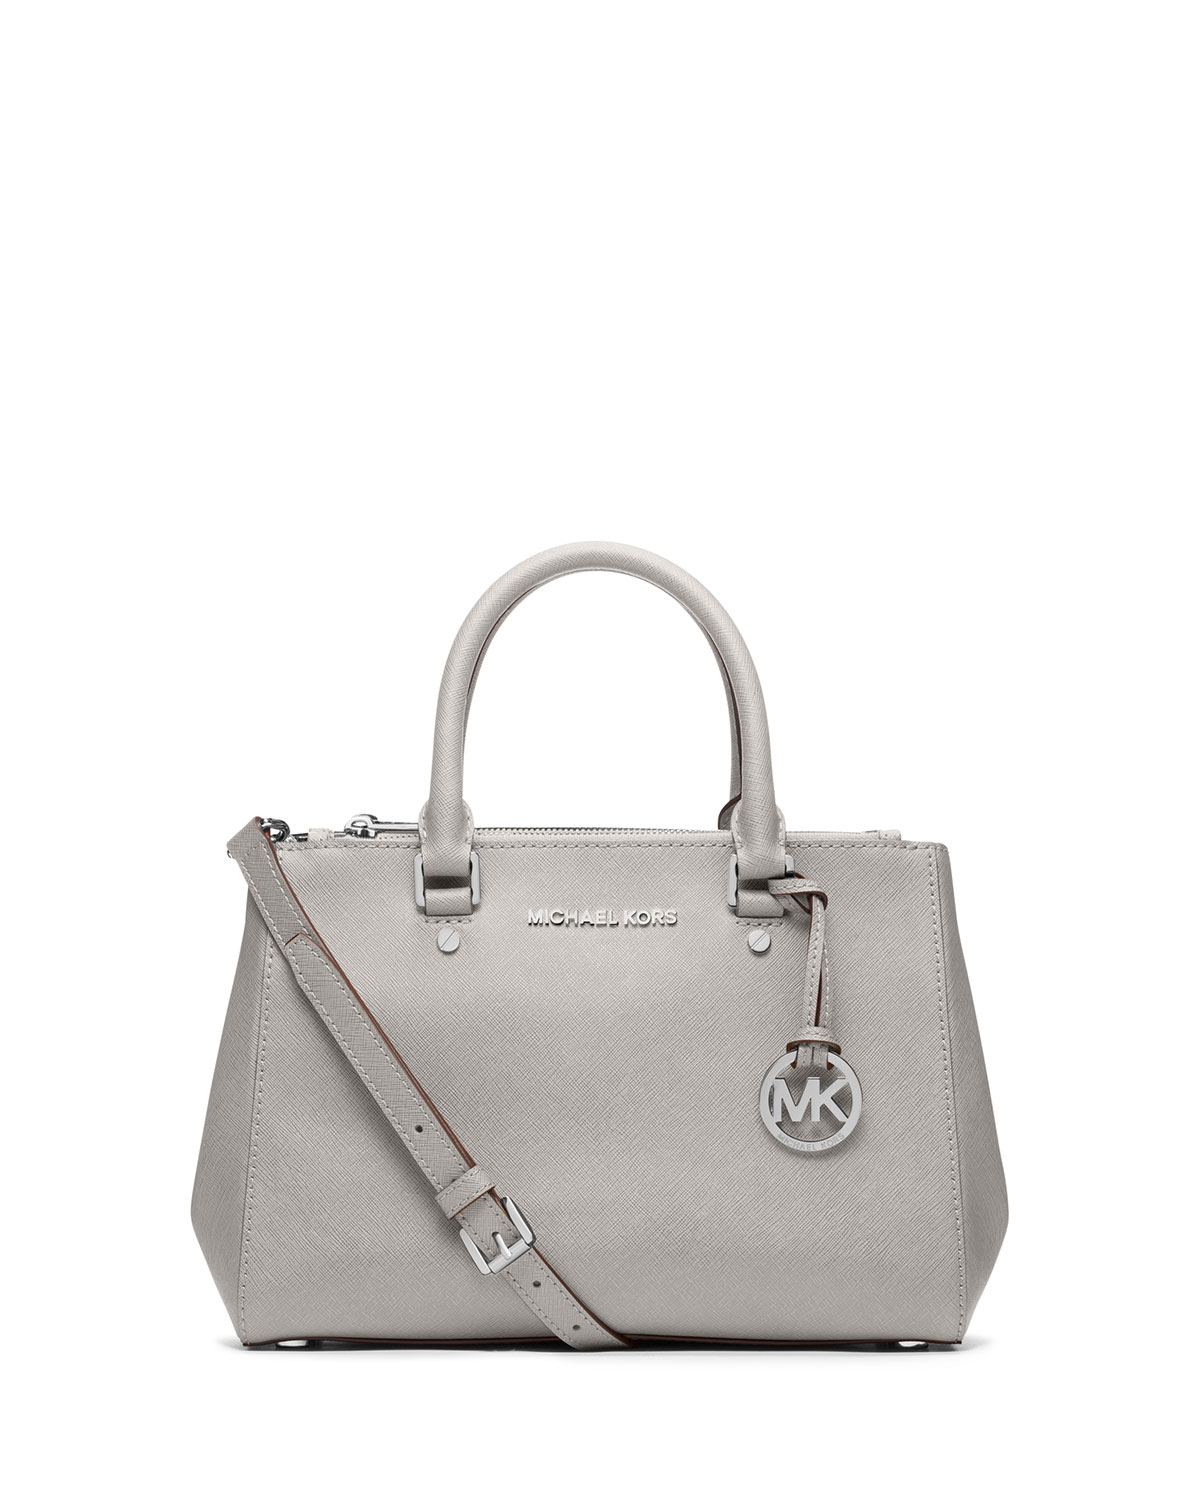 9763c3d55c MICHAEL Michael Kors Sutton Small Saffiano Satchel Bag